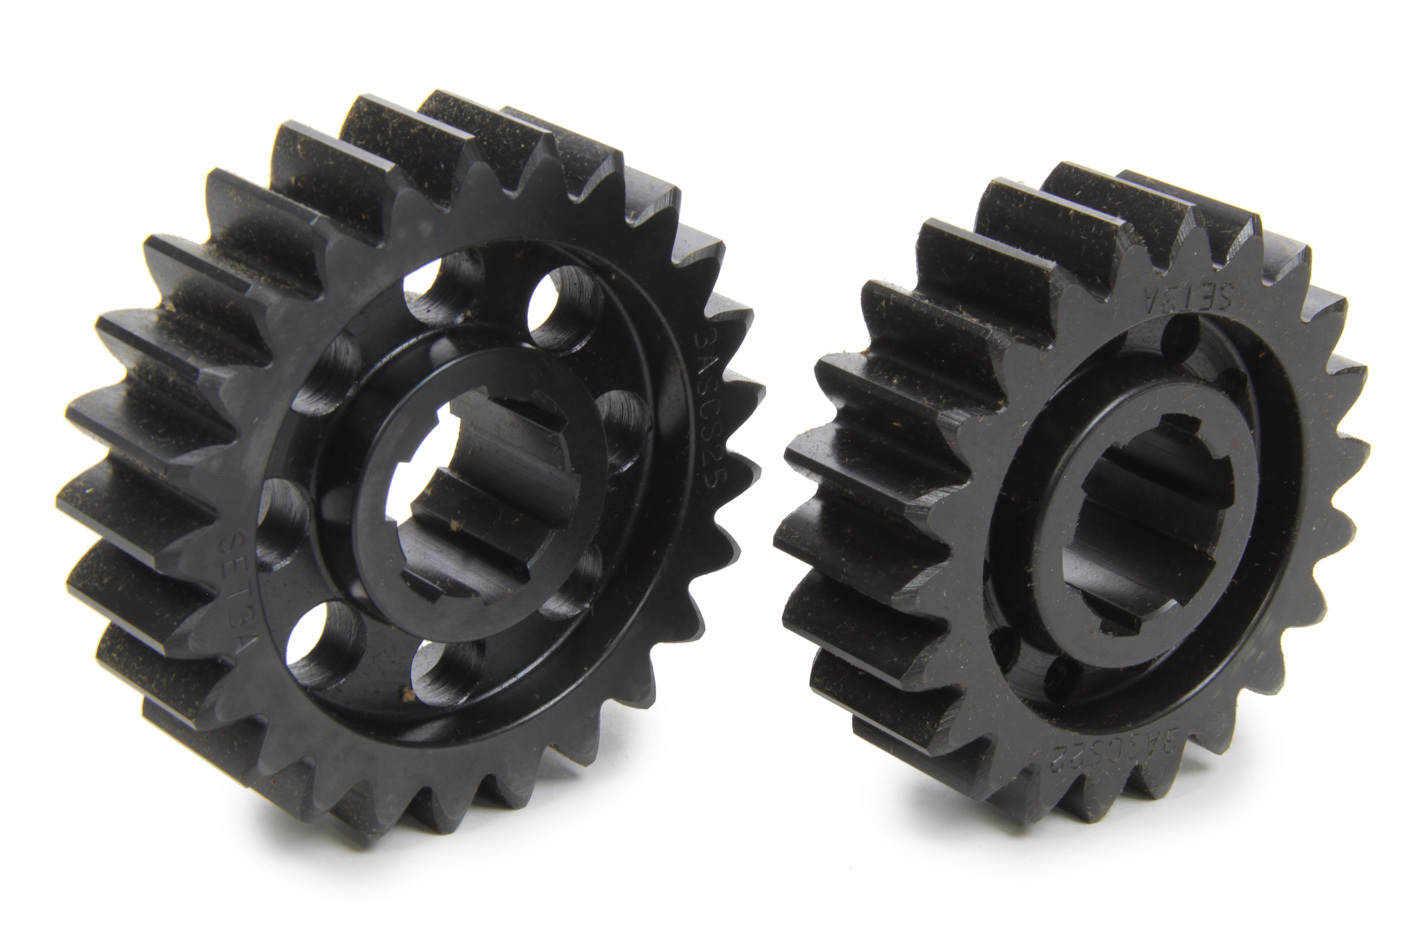 SCS Gears 63A Quick Change Gear Set, Professional, Set 63A, 6 Spline, 4.11 Ratio 3.62 / 4.67, 4.33 Ratio 3.81 / 4.92, Steel, Each